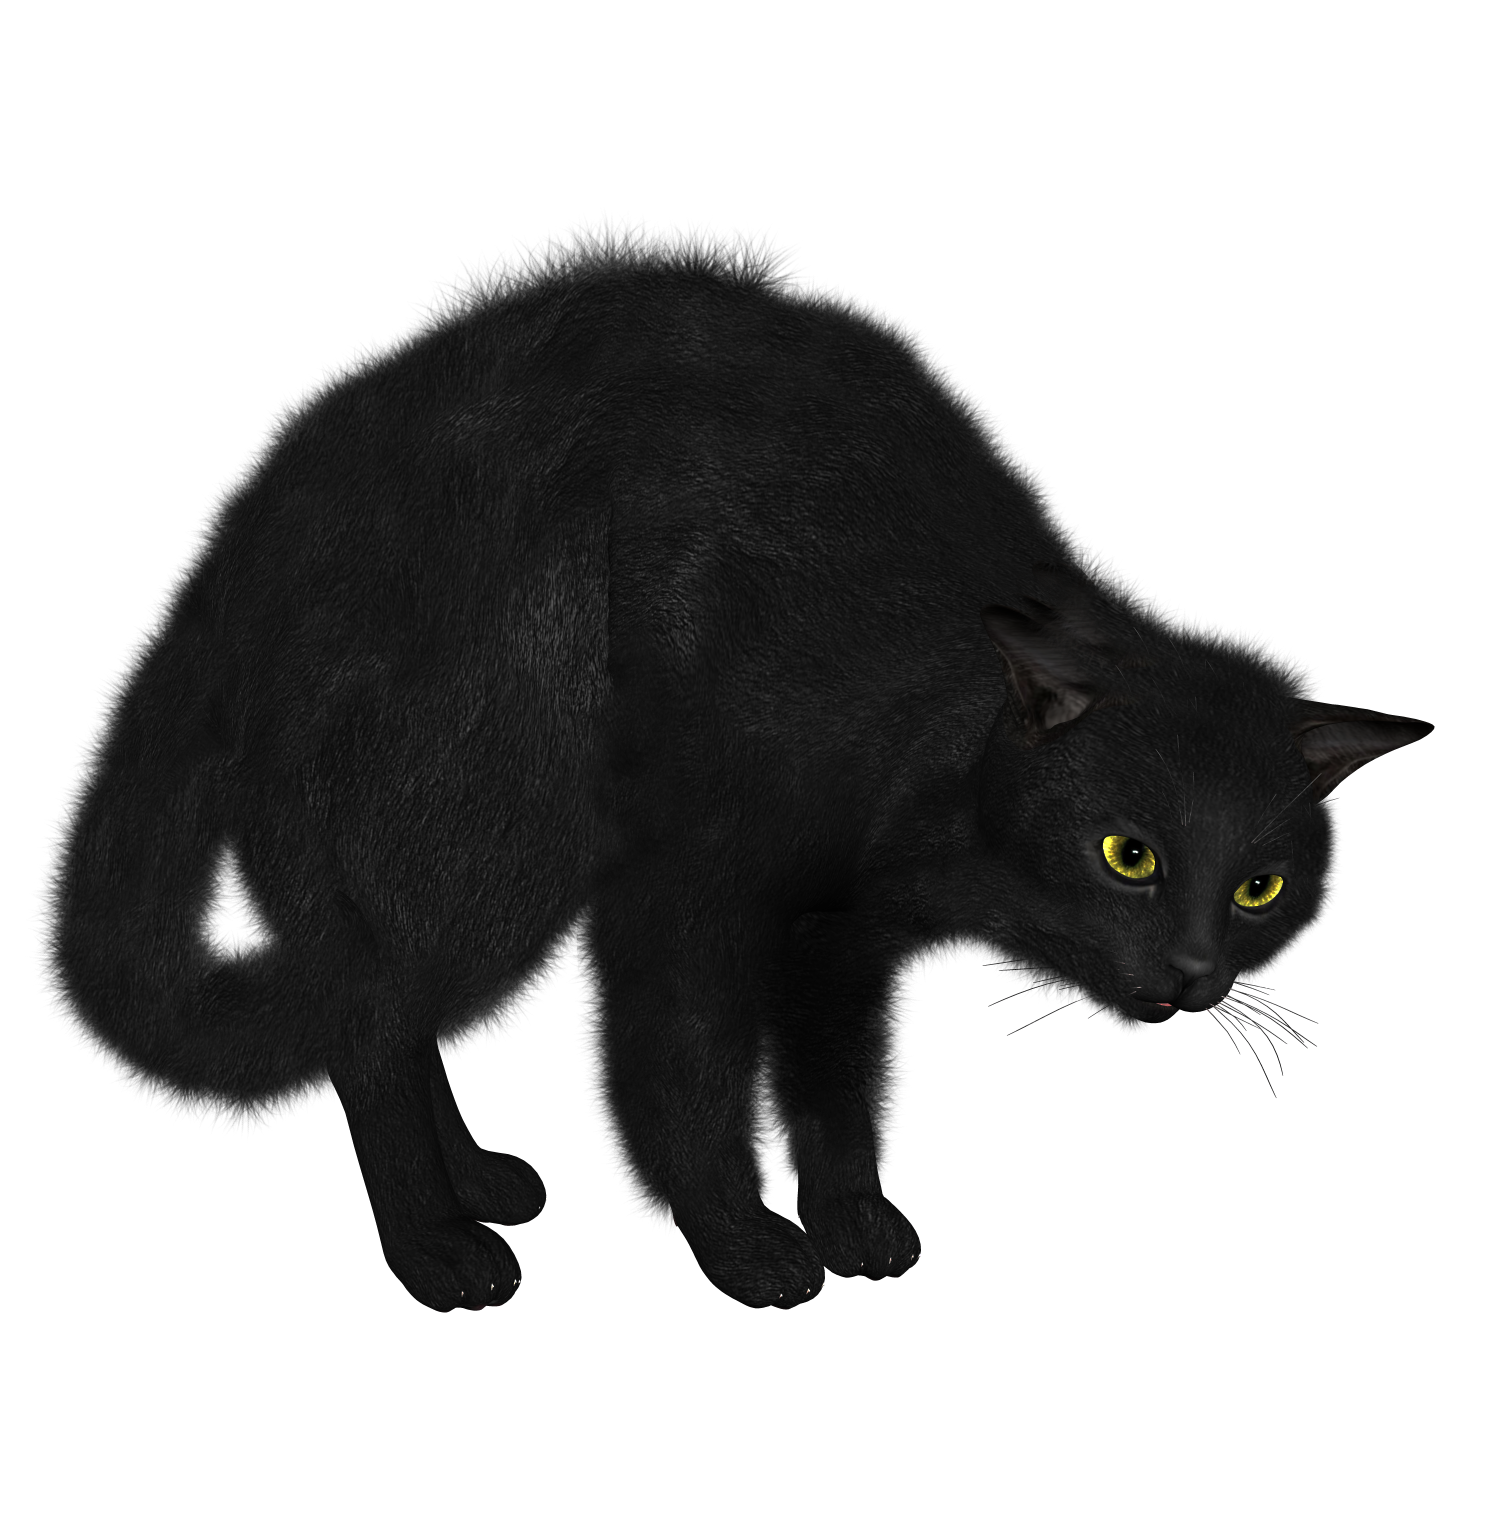 PNG Black Cat Picture #30351.